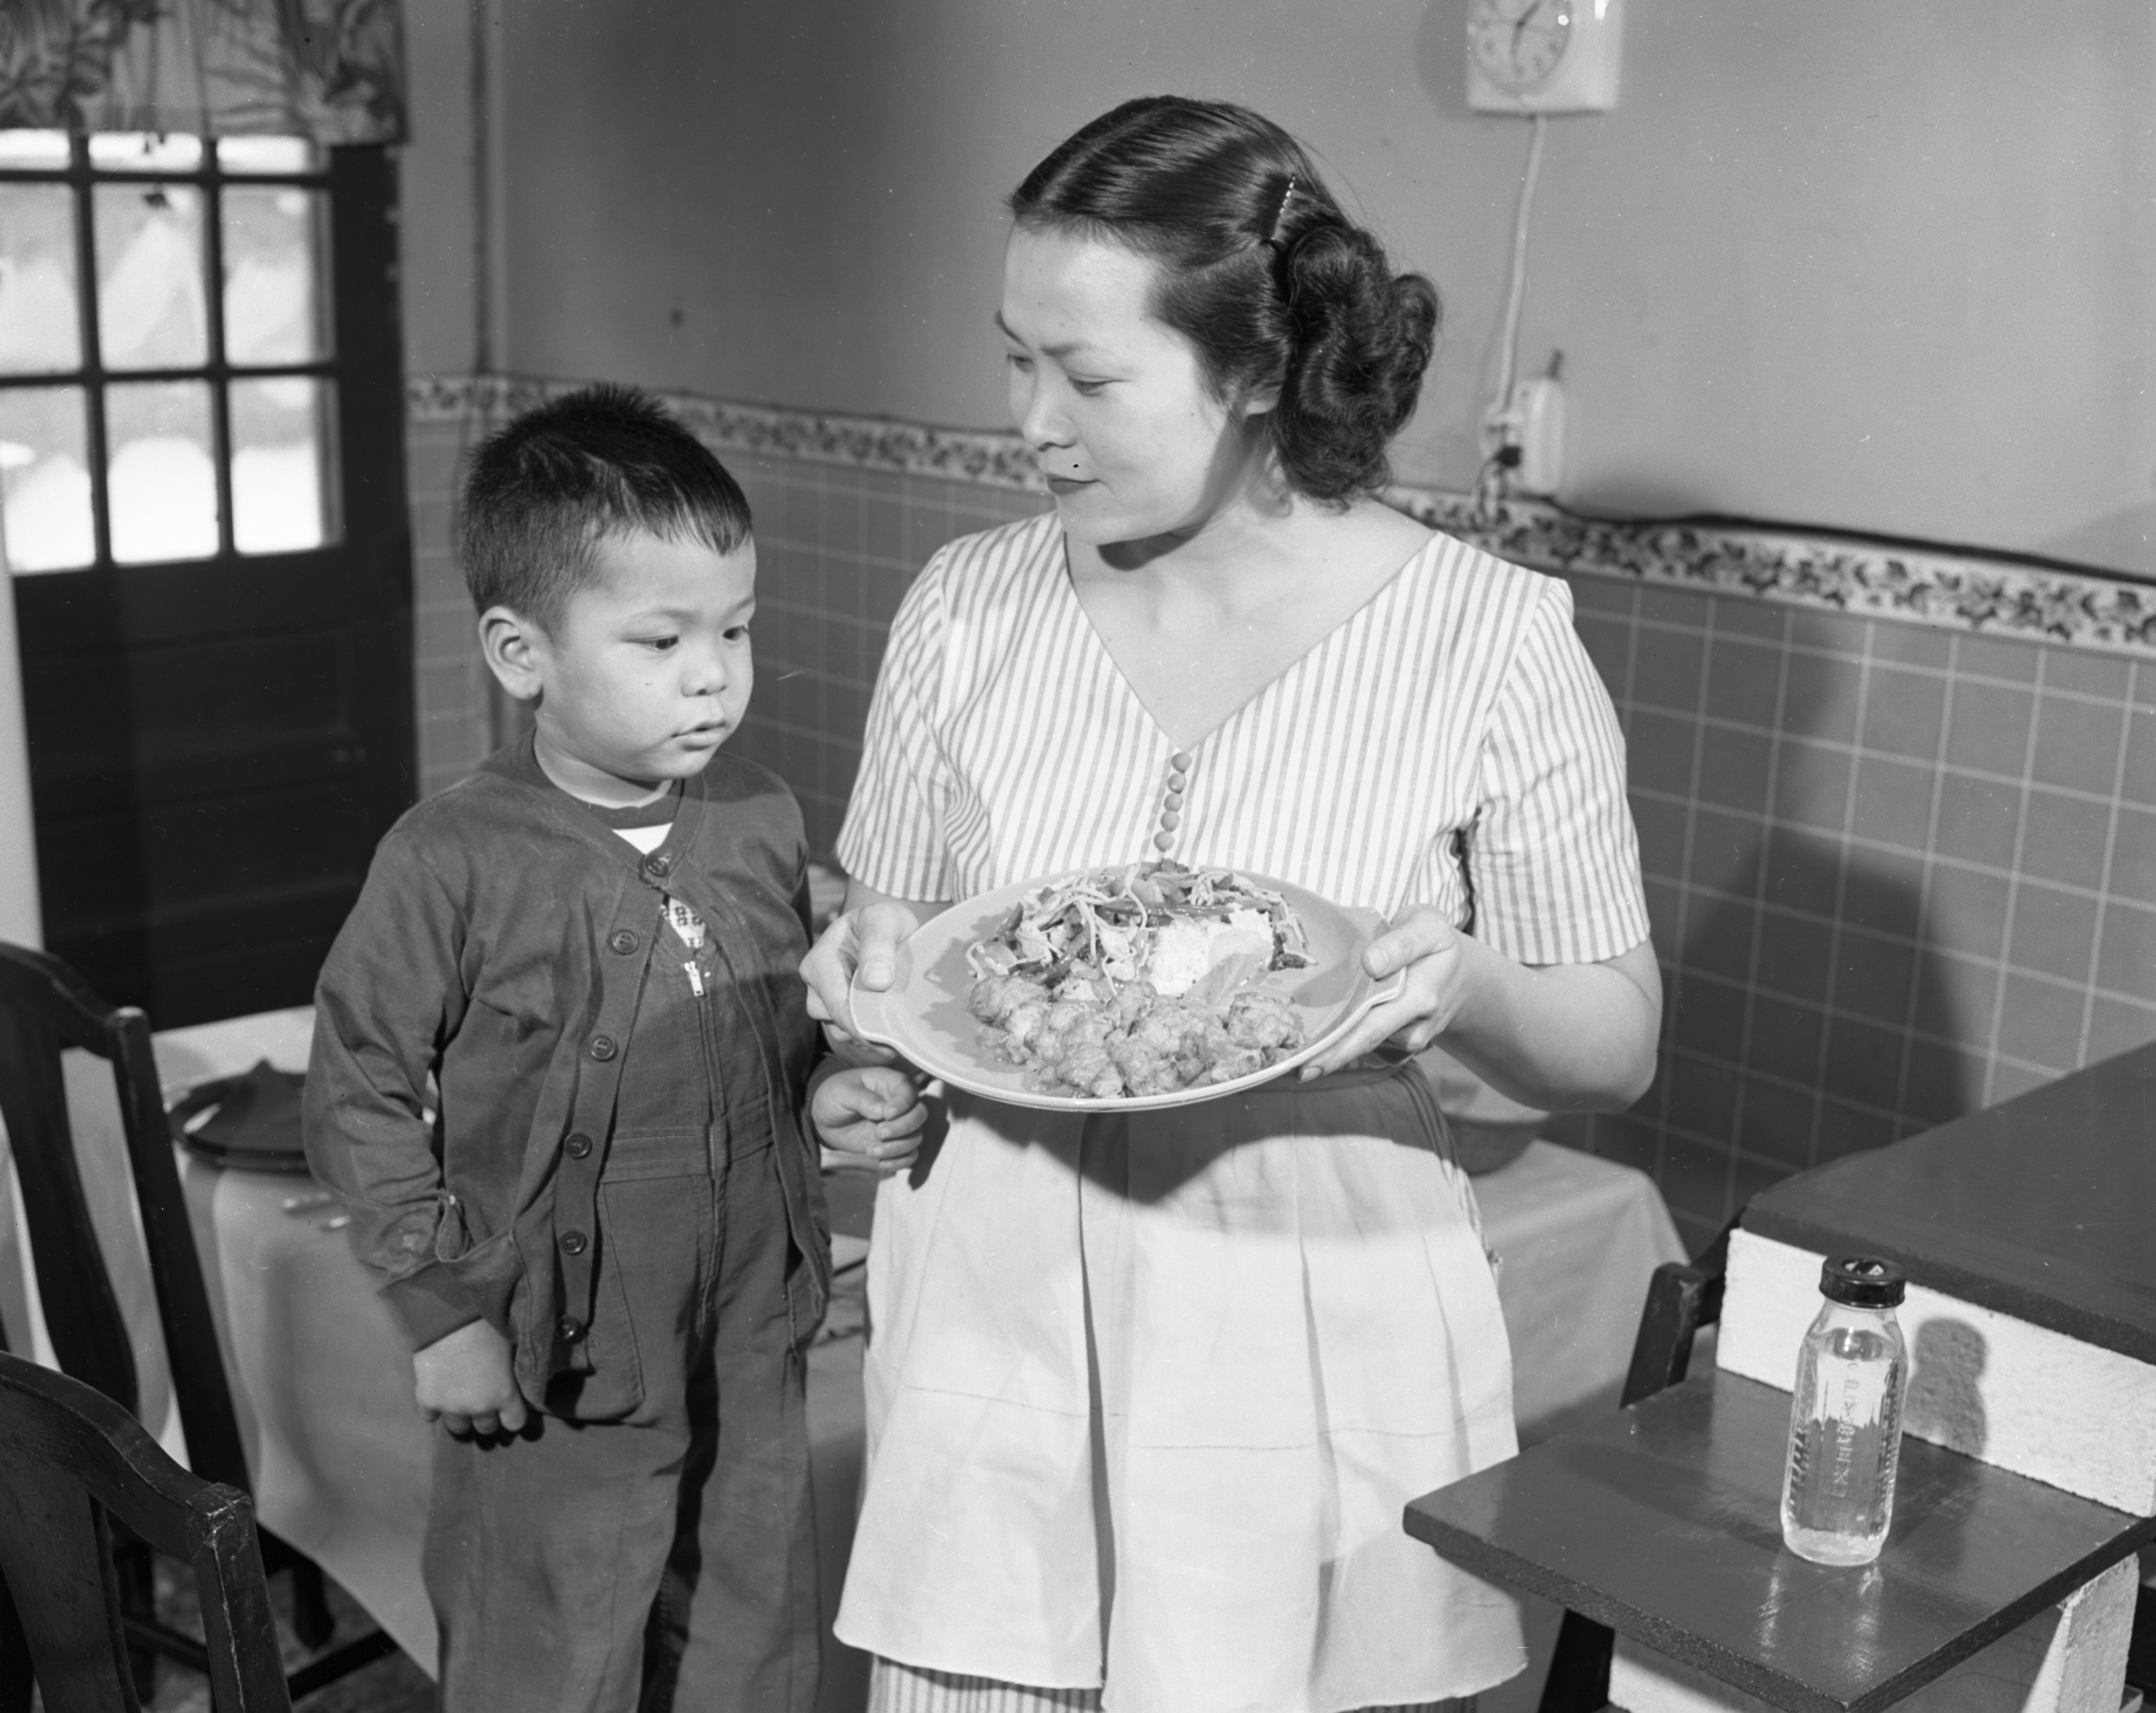 Image from Little Kimball Chun and Mrs. Kimball Chun with Chinese Shrimp and Vegetable Chop Suey, March 1954